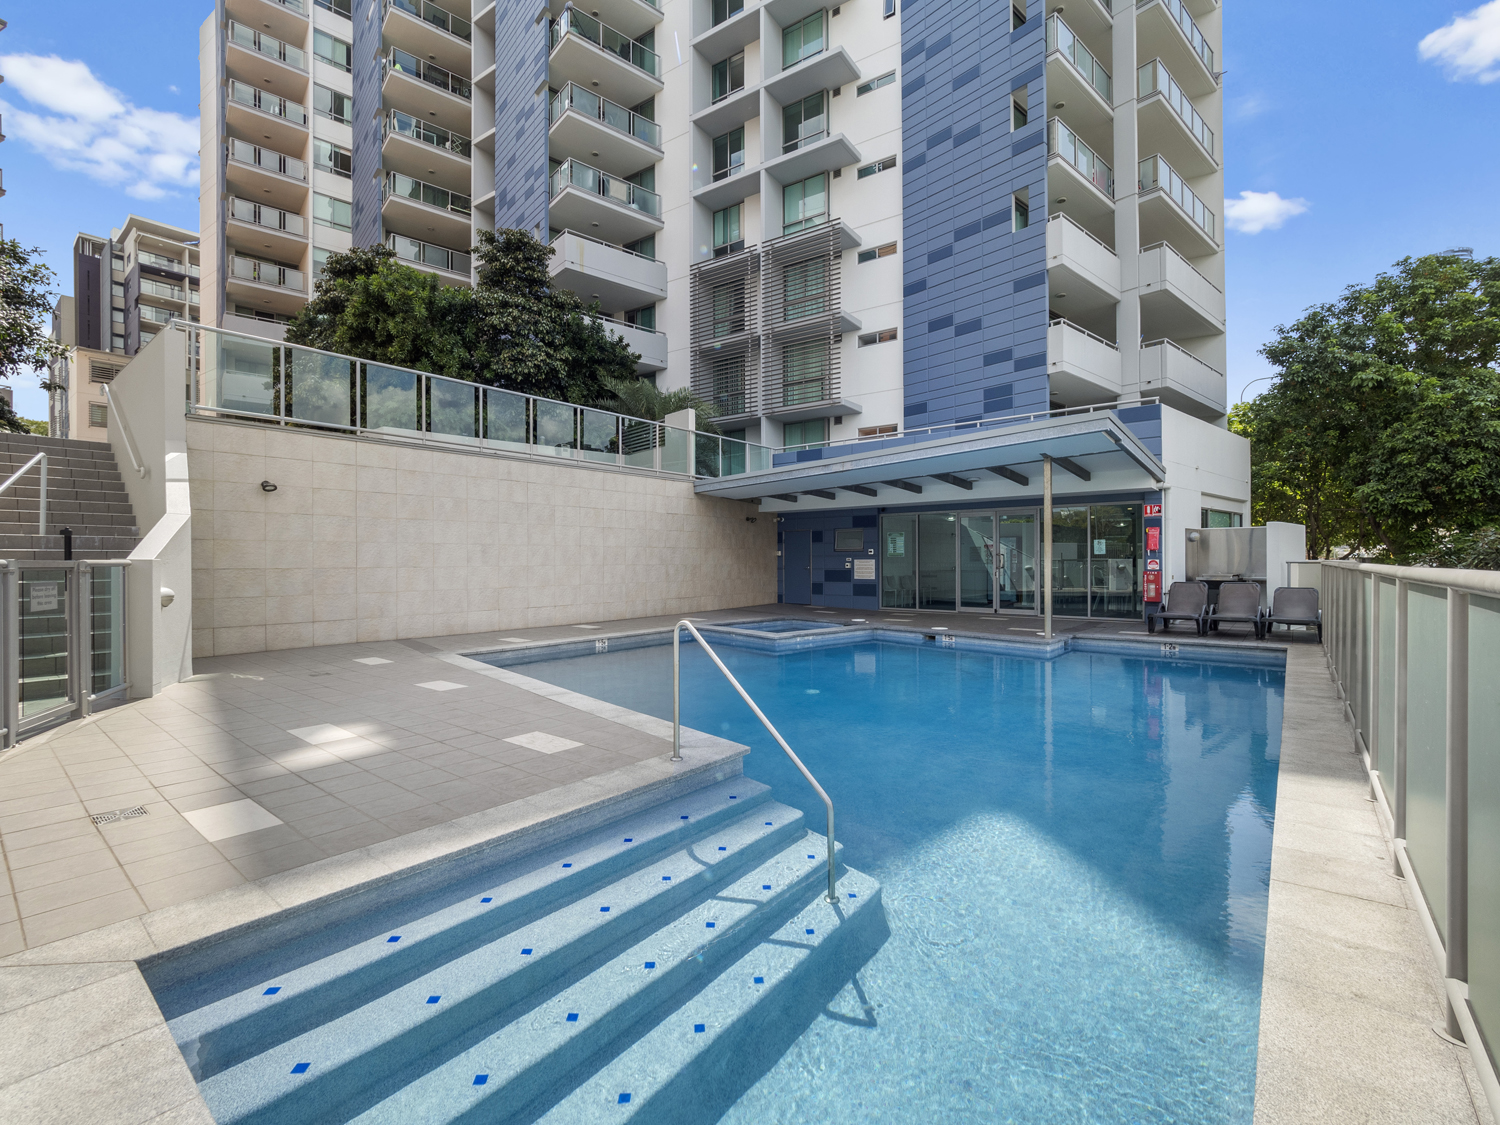 The pool area - 9 Edmonstone St South Brisbane apartment photography